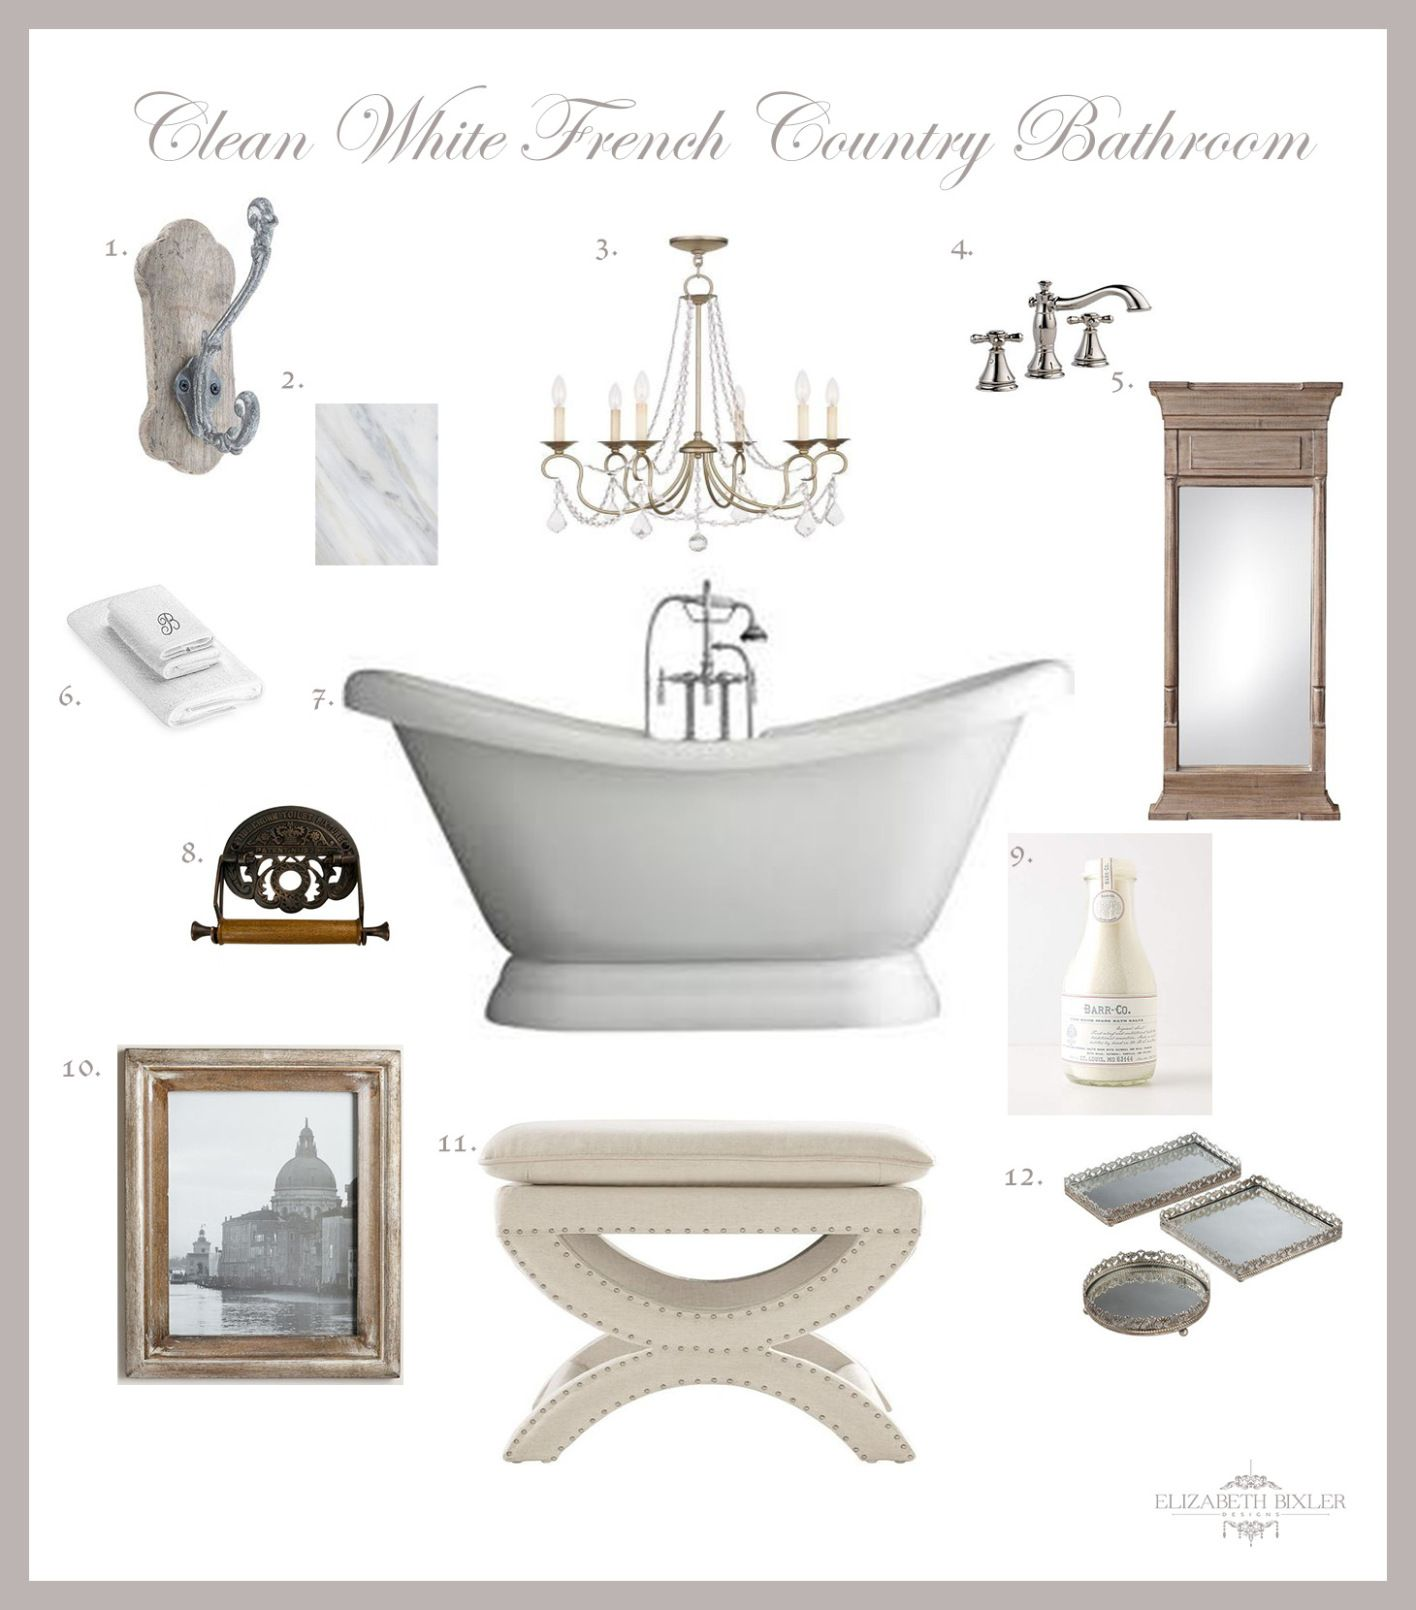 French Country Bathroom Design Collage - | Pinterest | Pedestal tub ...